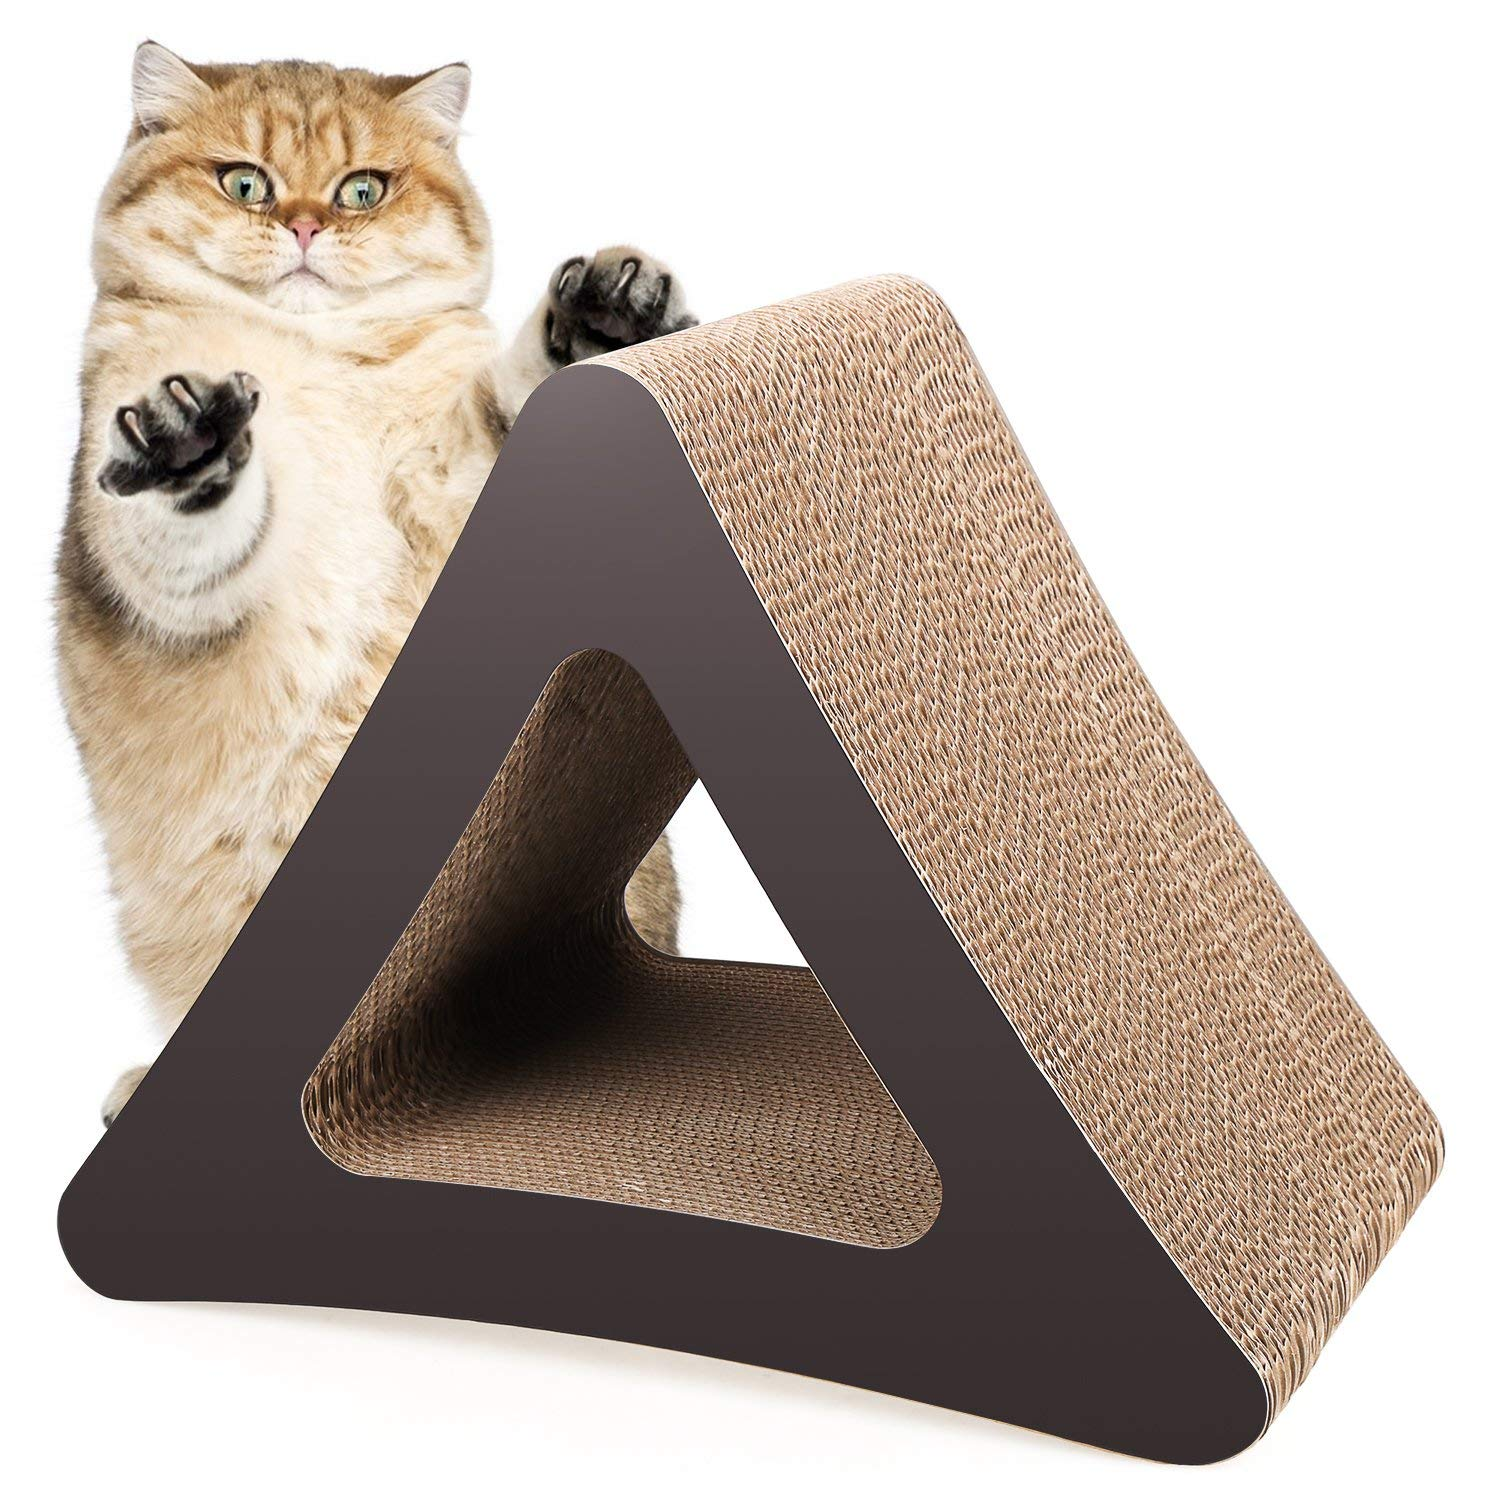 Cat Tree Scratching Post Kitten Activity Center Furniture Bed With Sisal Postheight 0